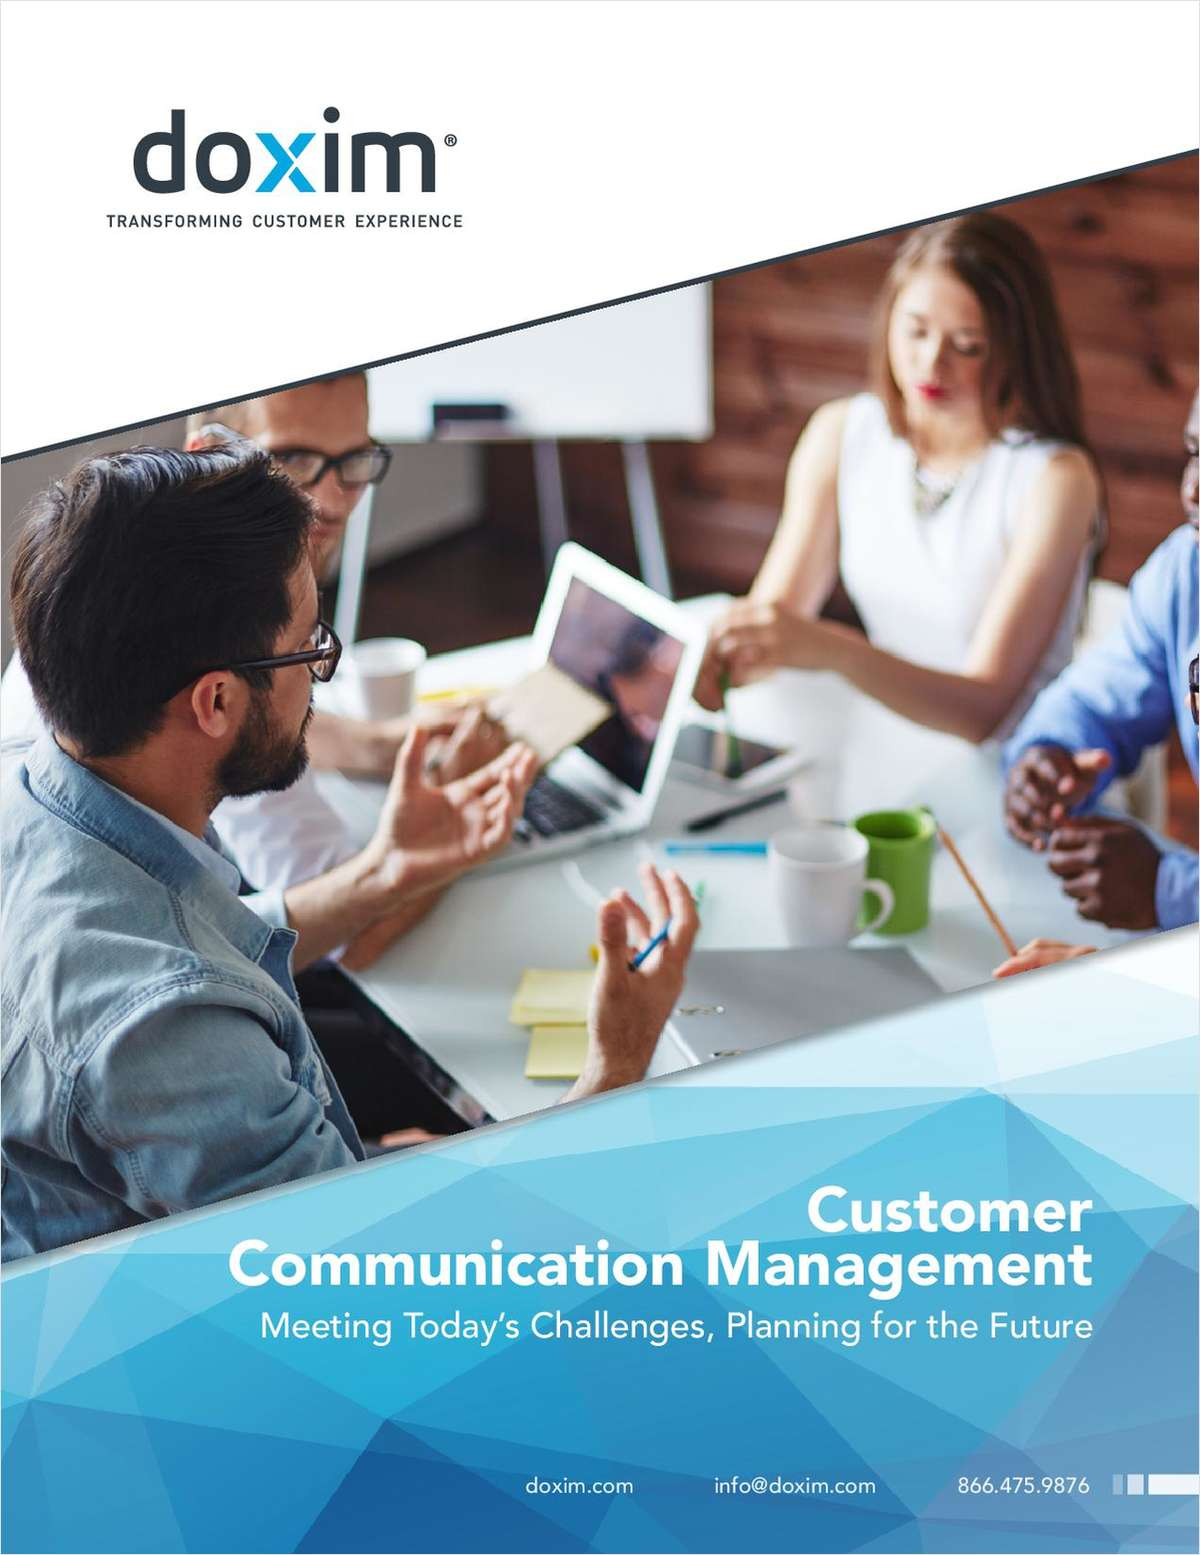 Customer Communication Management; Meeting Today's Challenges, Planning for the Future